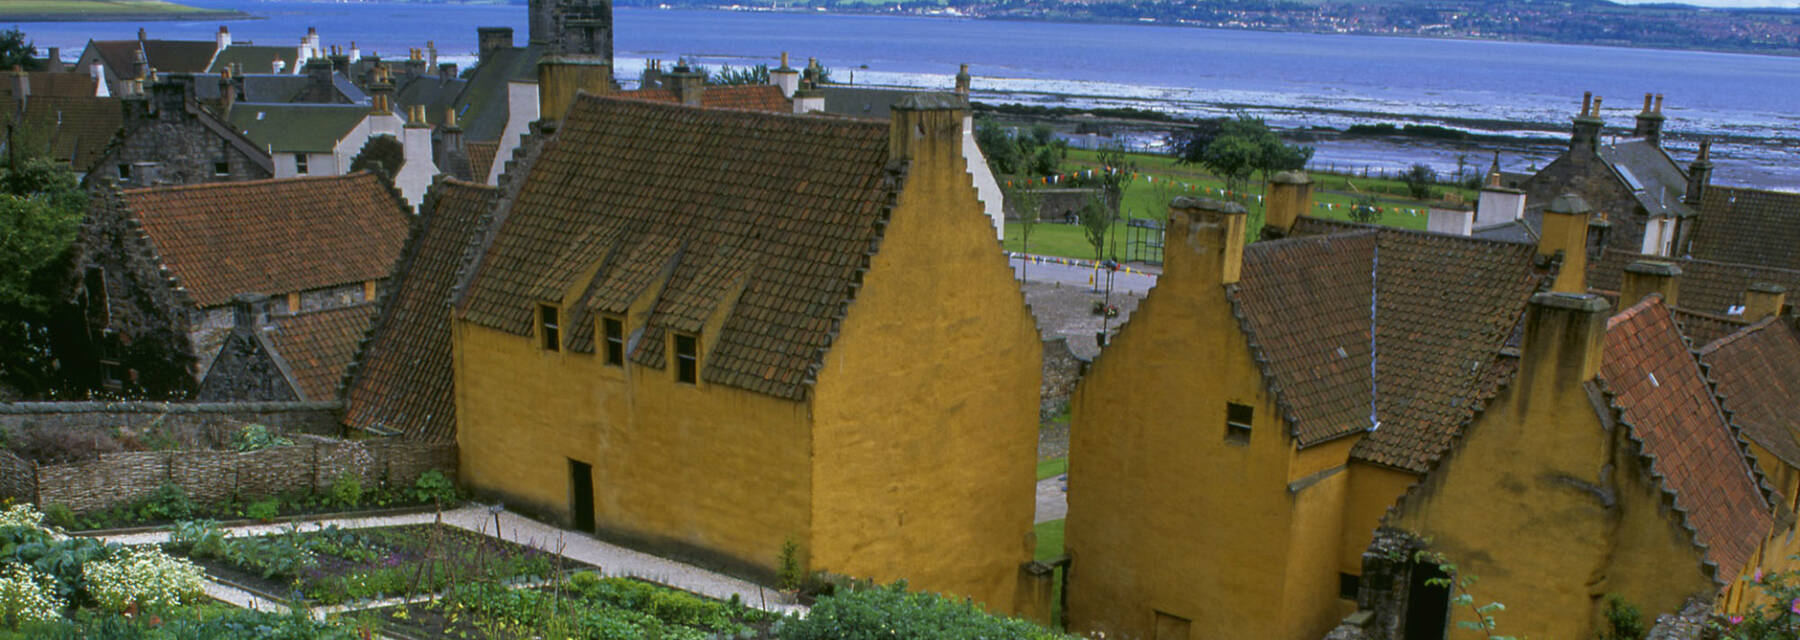 The palace gardens at the Royal Burgh of Culross